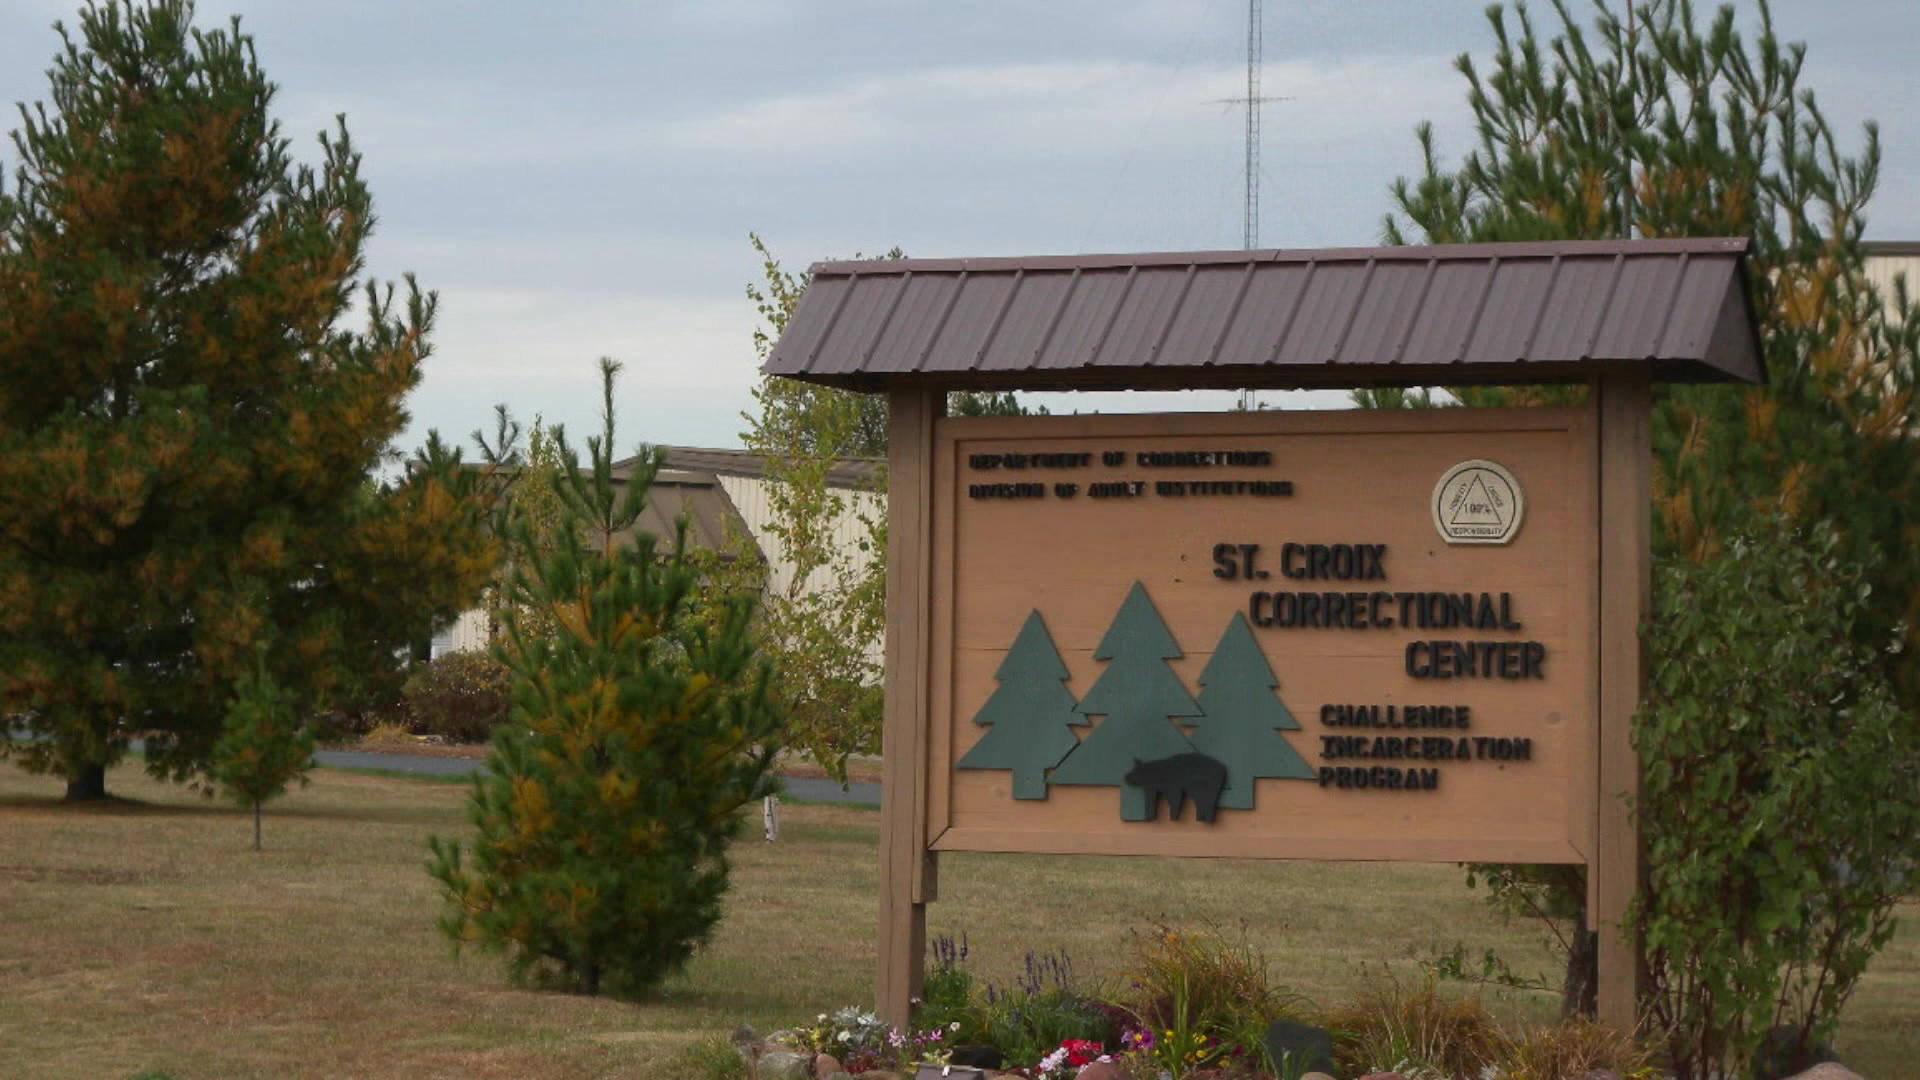 A sign for the St. Croix Correctional Center and its Challenge Incarceration Program is surrounded by pine trees.